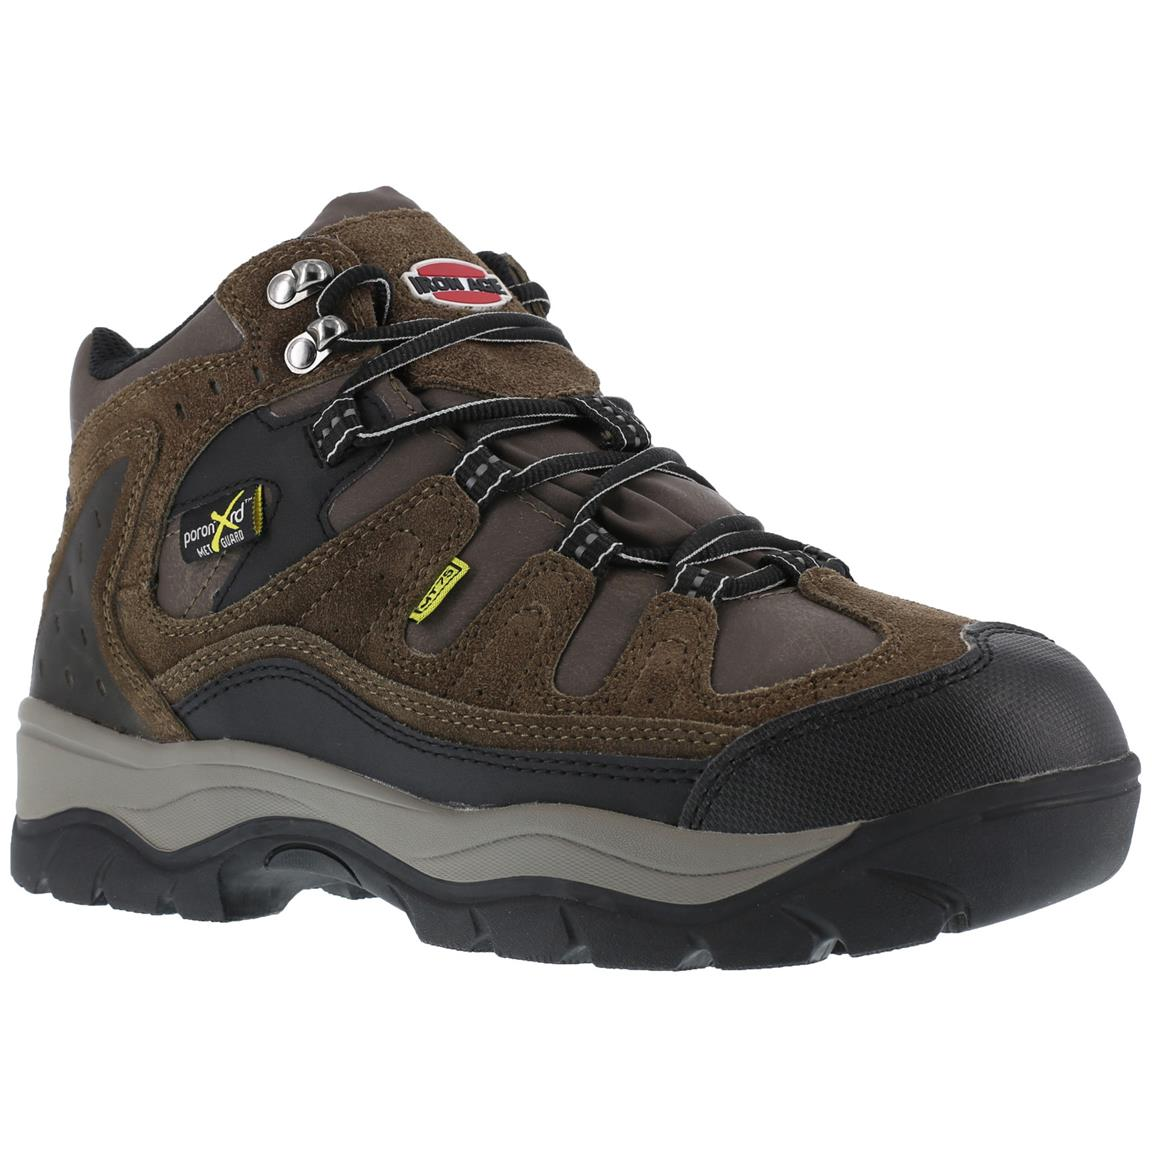 Iron Age Men's High Ridge Boots, Poron XRD, Steel Toe, Brown